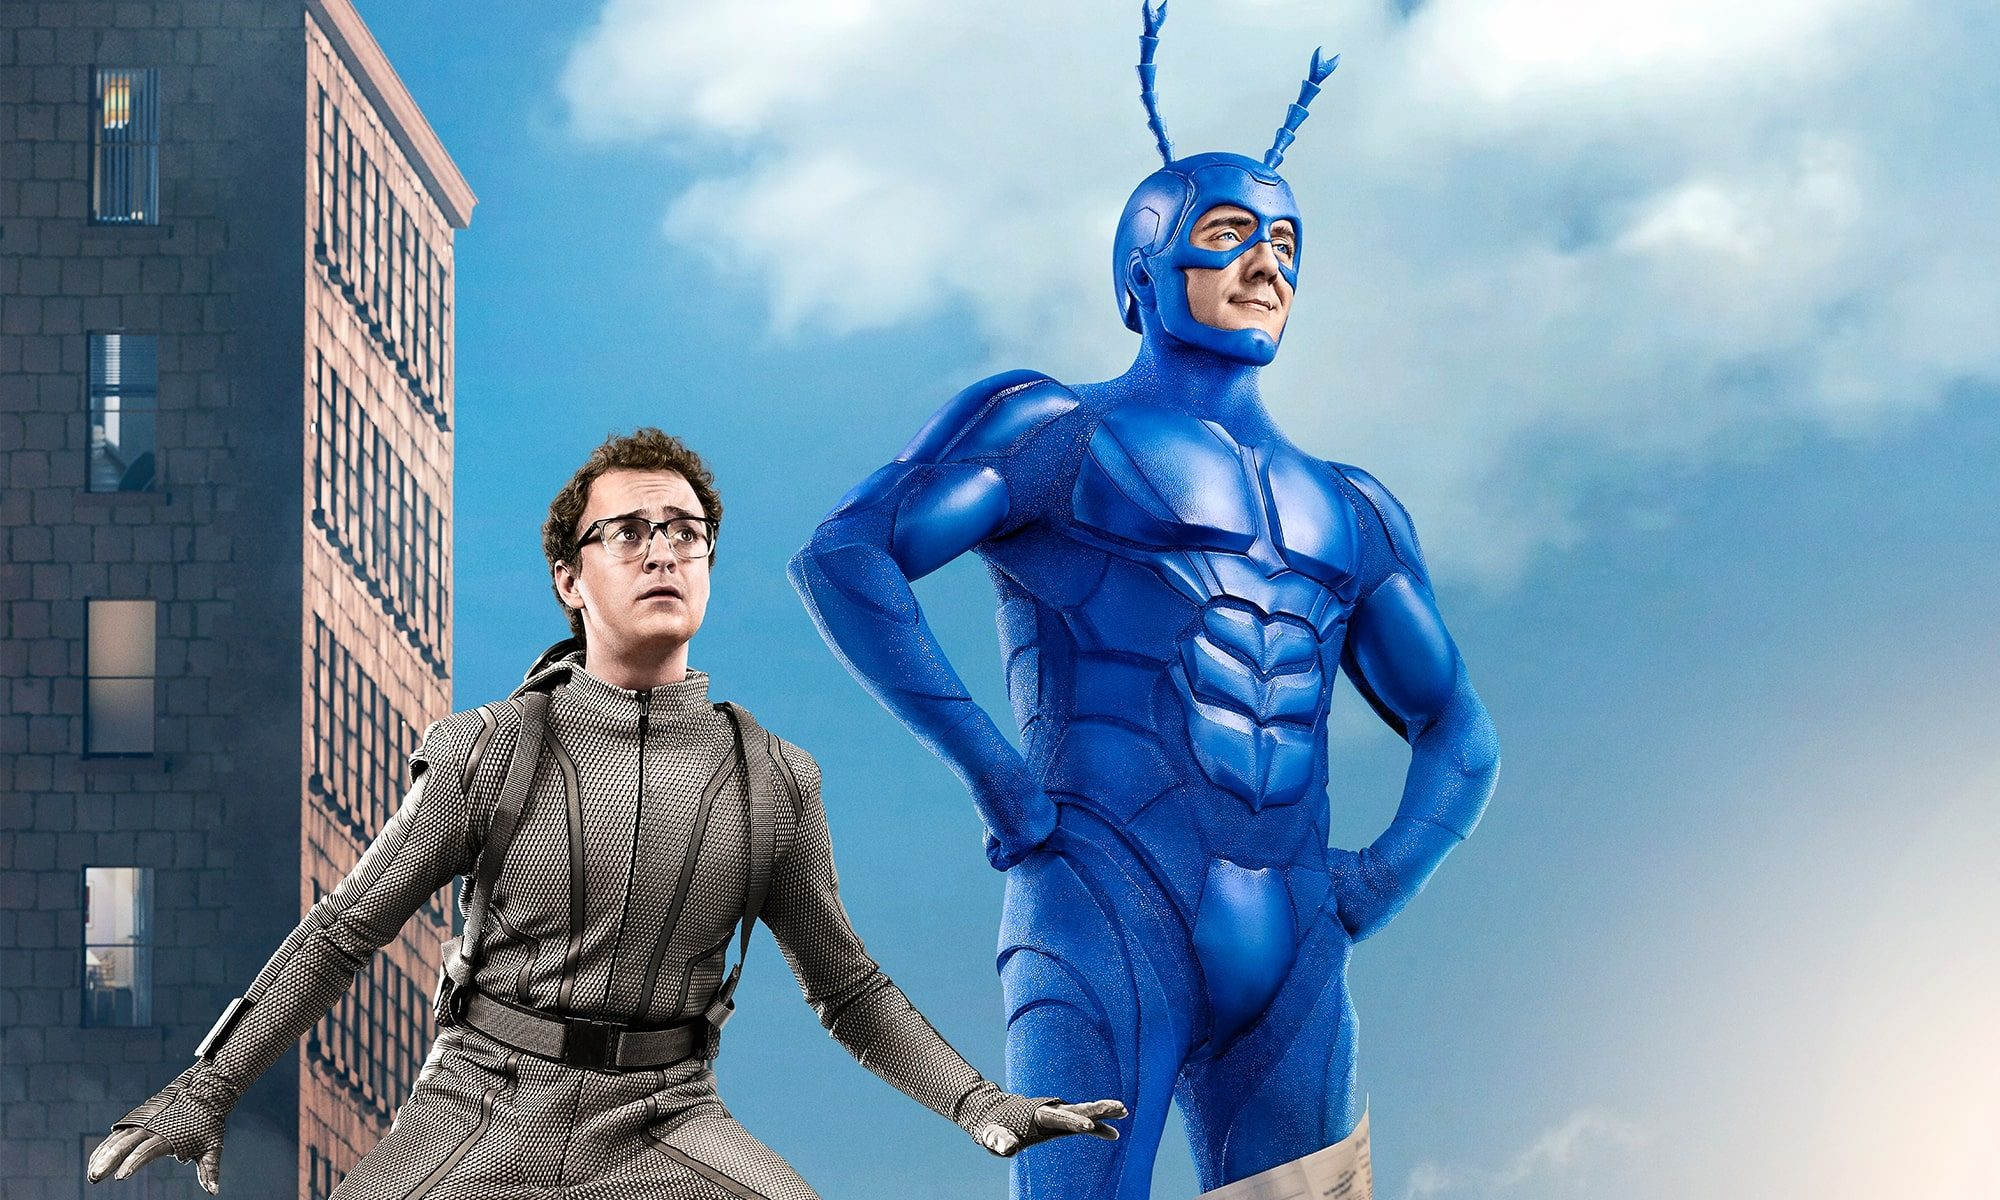 THE TICK BANNER IMAGE